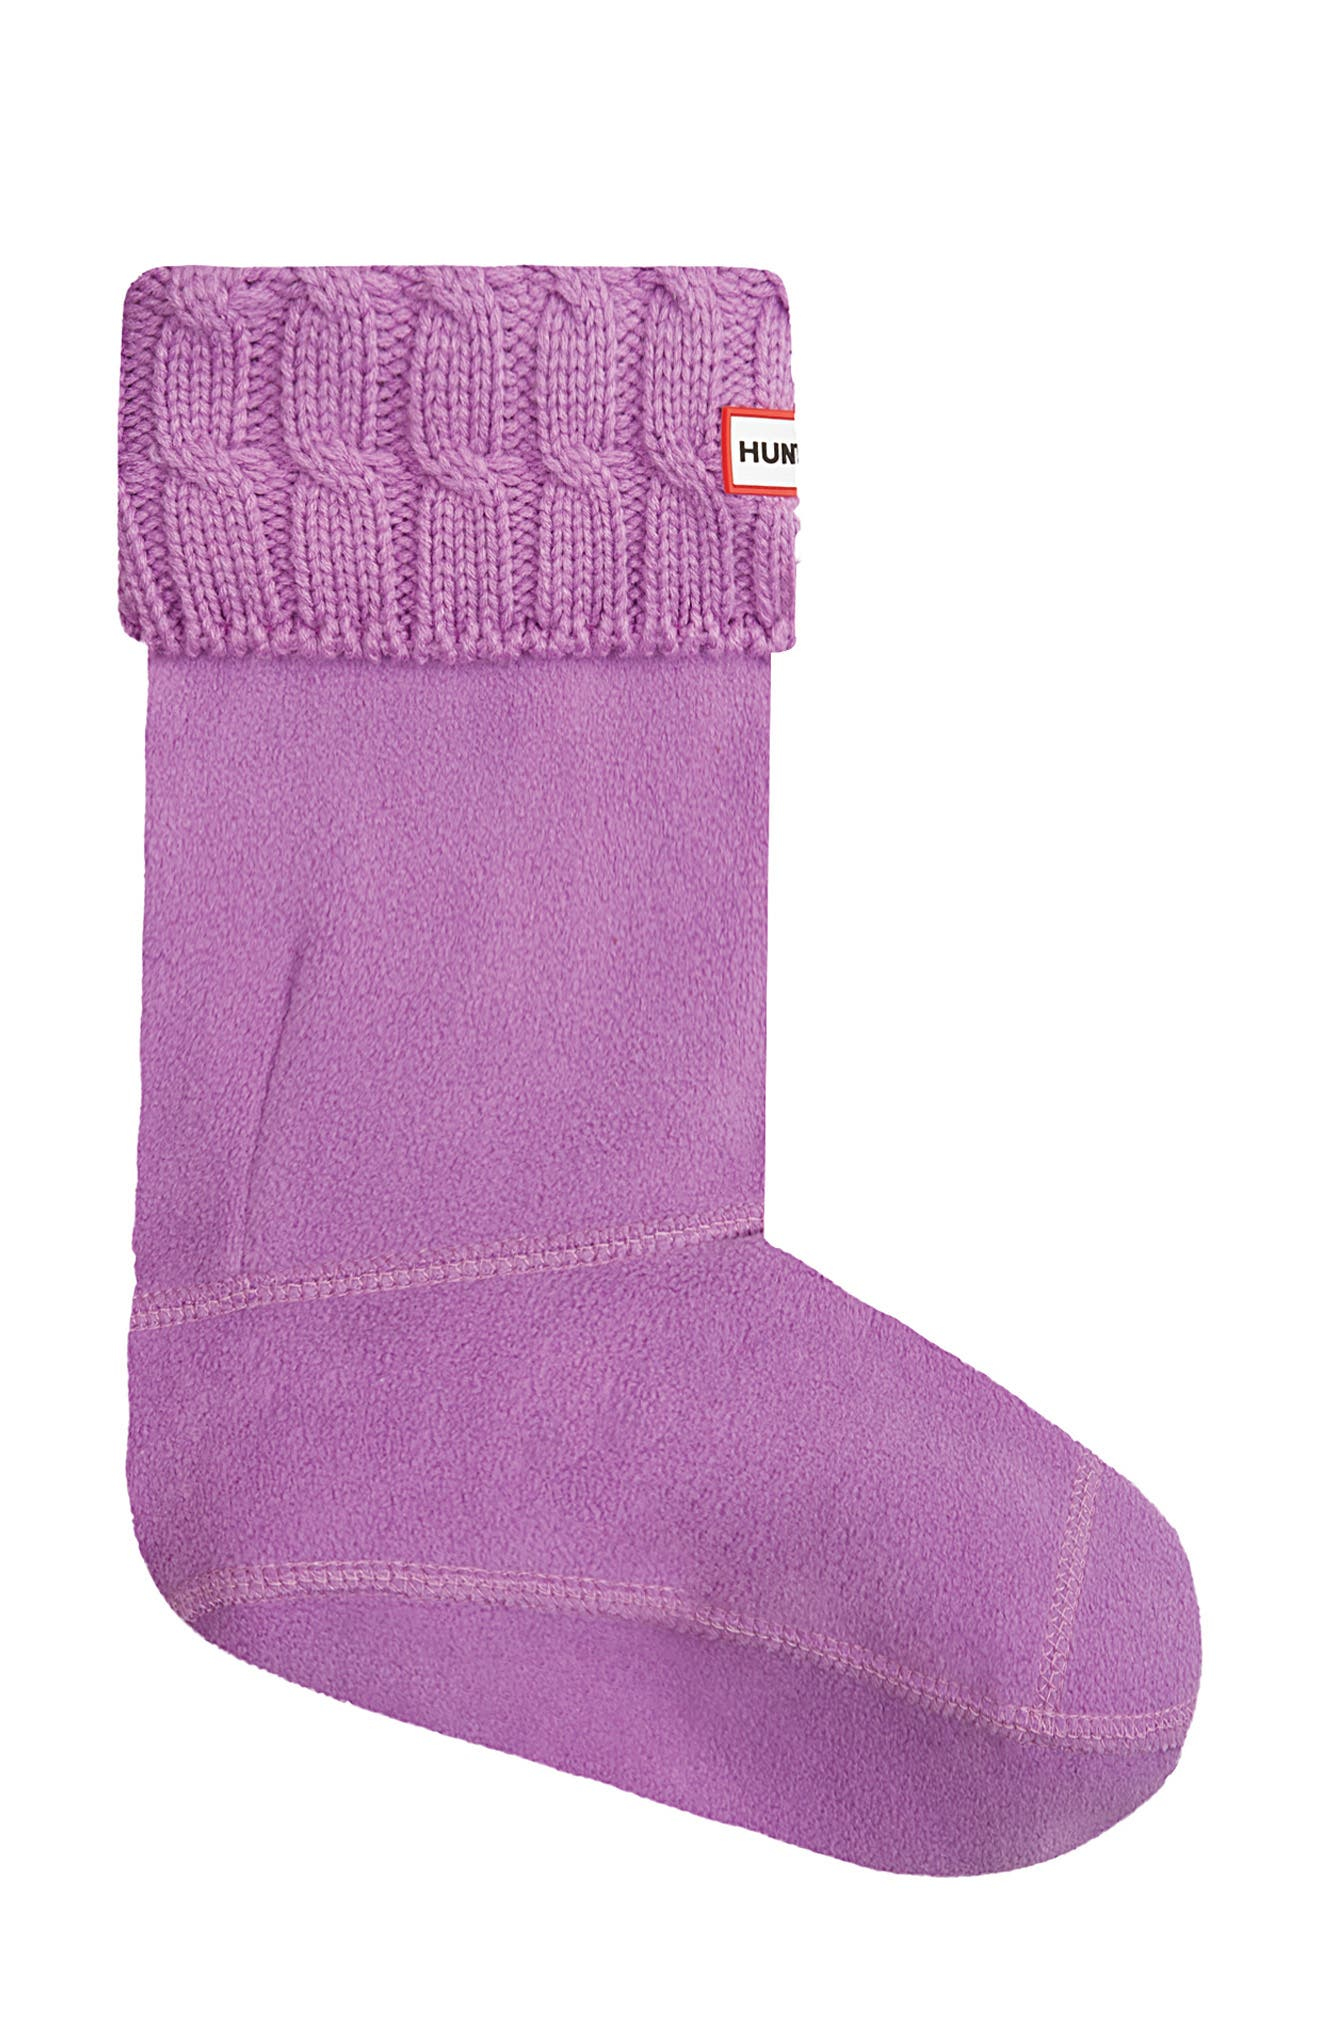 Original Short Cable Knit Cuff Welly Boot Socks,                         Main,                         color, THISTLE